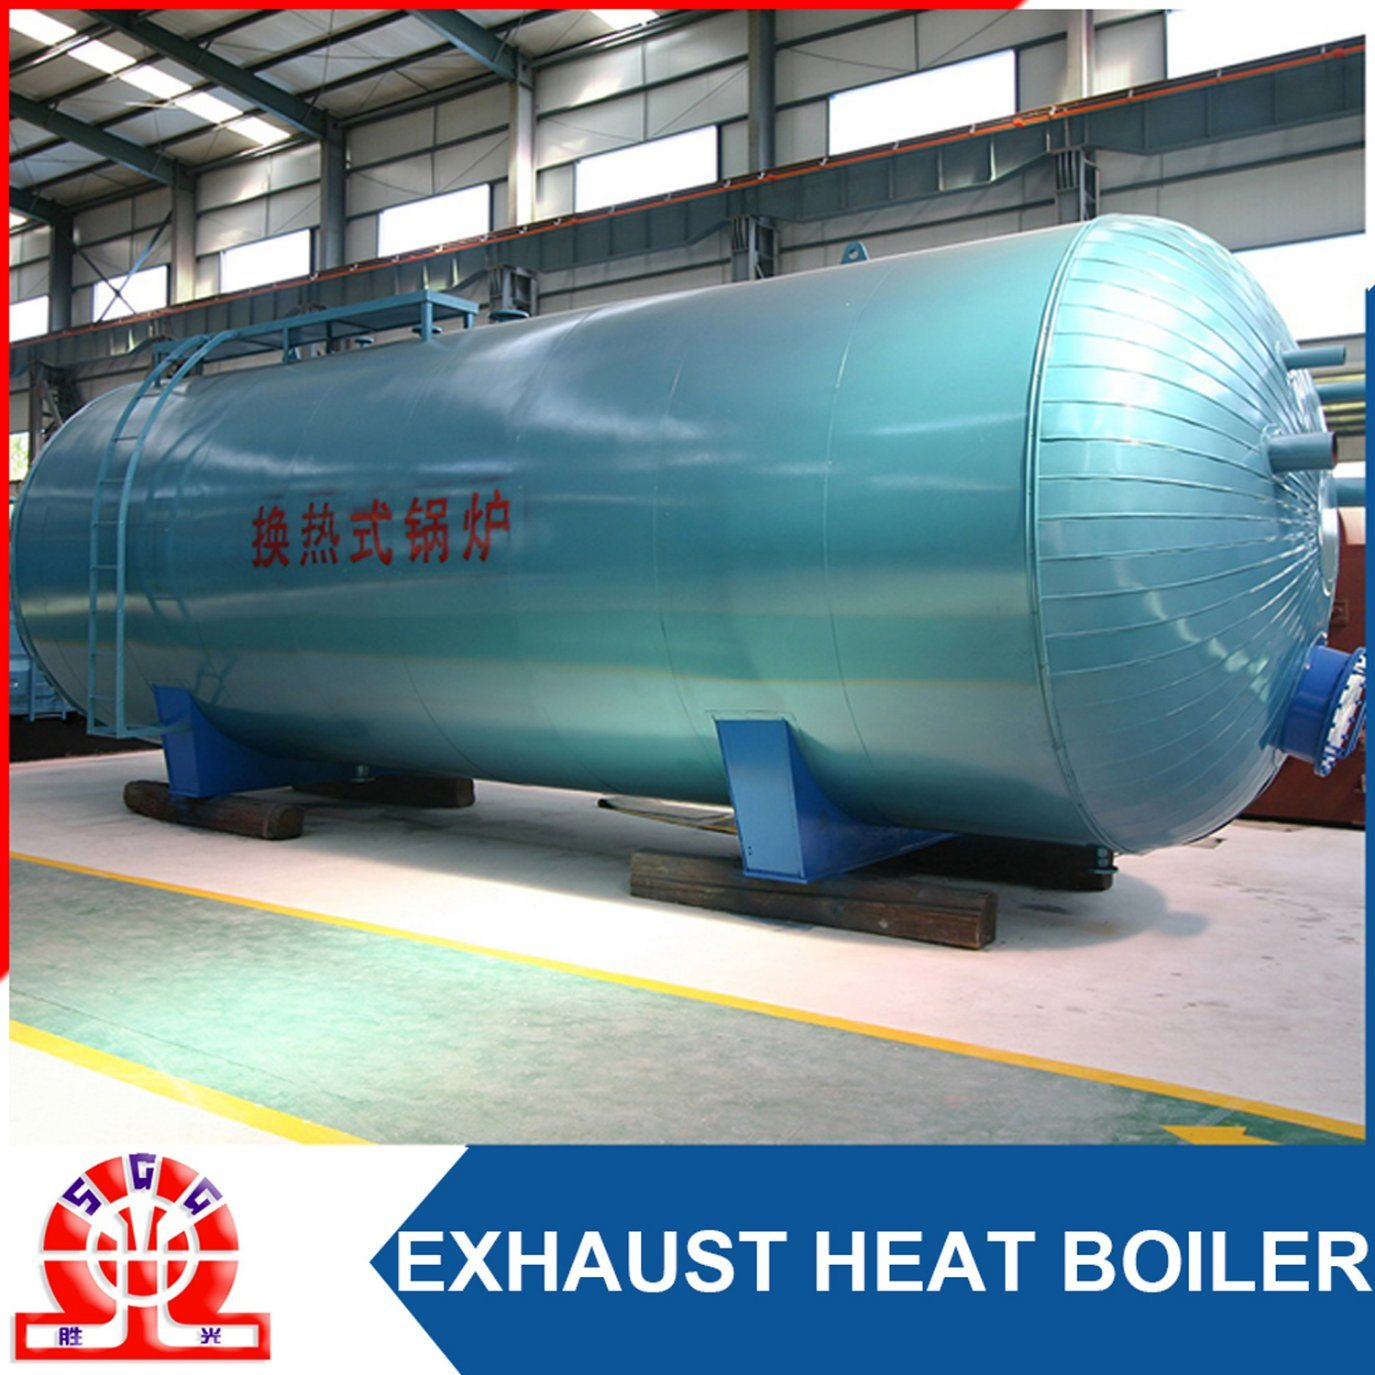 China Oil Field Equipment Exhaust Gas Boiler - China Exhaust Gas ...